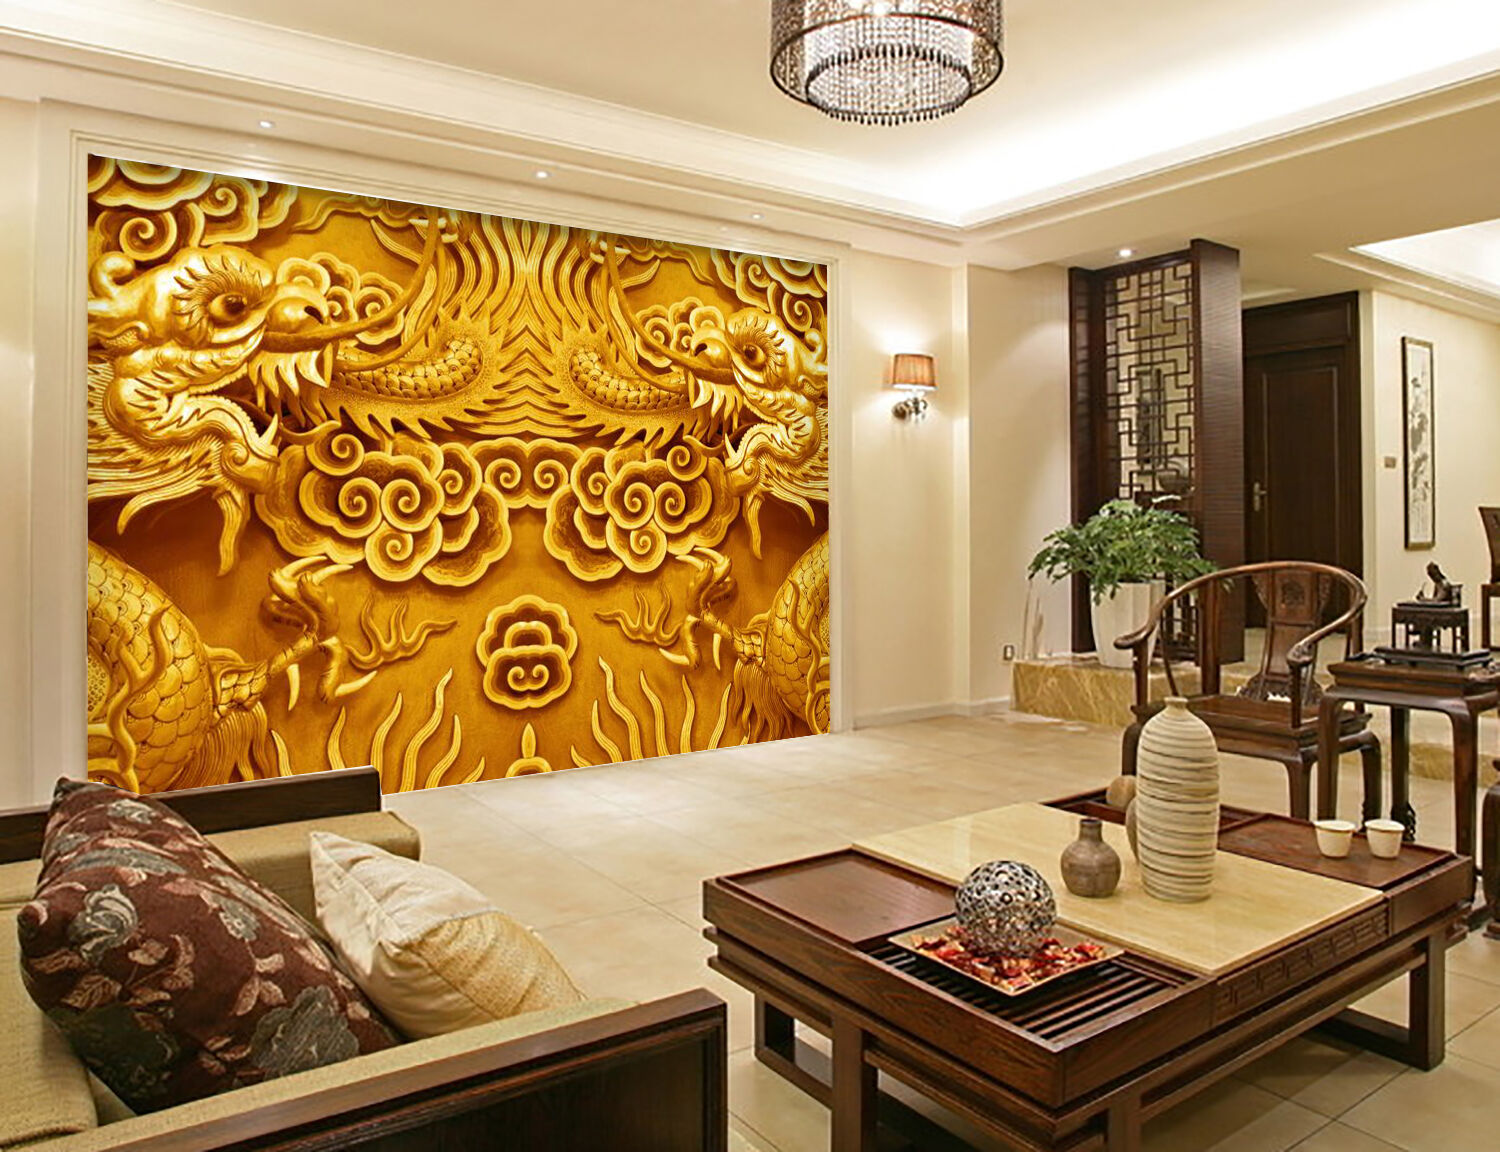 3D Pretty Carved Dragons 937 Paper Wall Print Wall Decal Wall Deco Indoor Murals